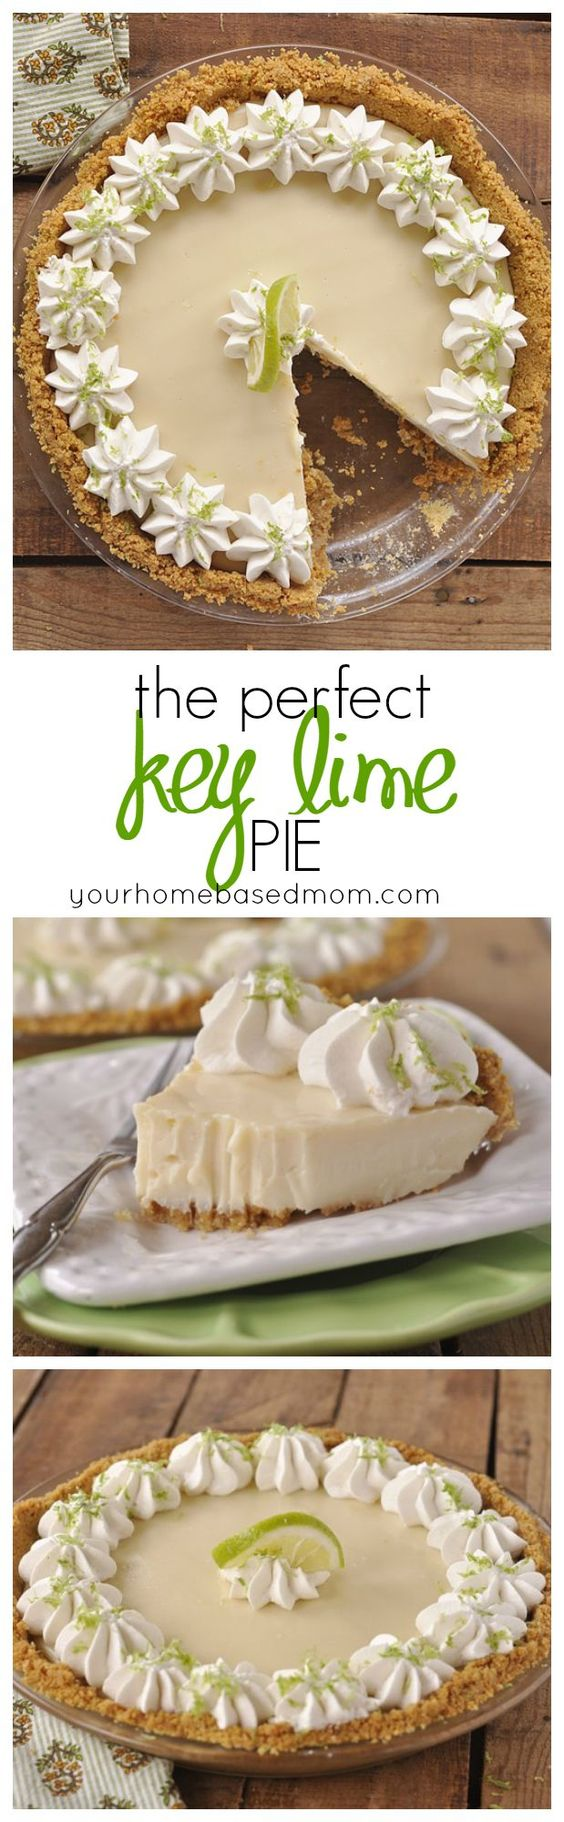 The PERFECT Key Lime Pie Dessert Recipe and Tutorial via Your Homebased Mom - No fooling! This truly is the PERFECT Key Lime Pie. I dare you to try it and prove me wrong!! Favorite EASY Pies Recipes - Brunch Dessert No-Bake + Bake Musts